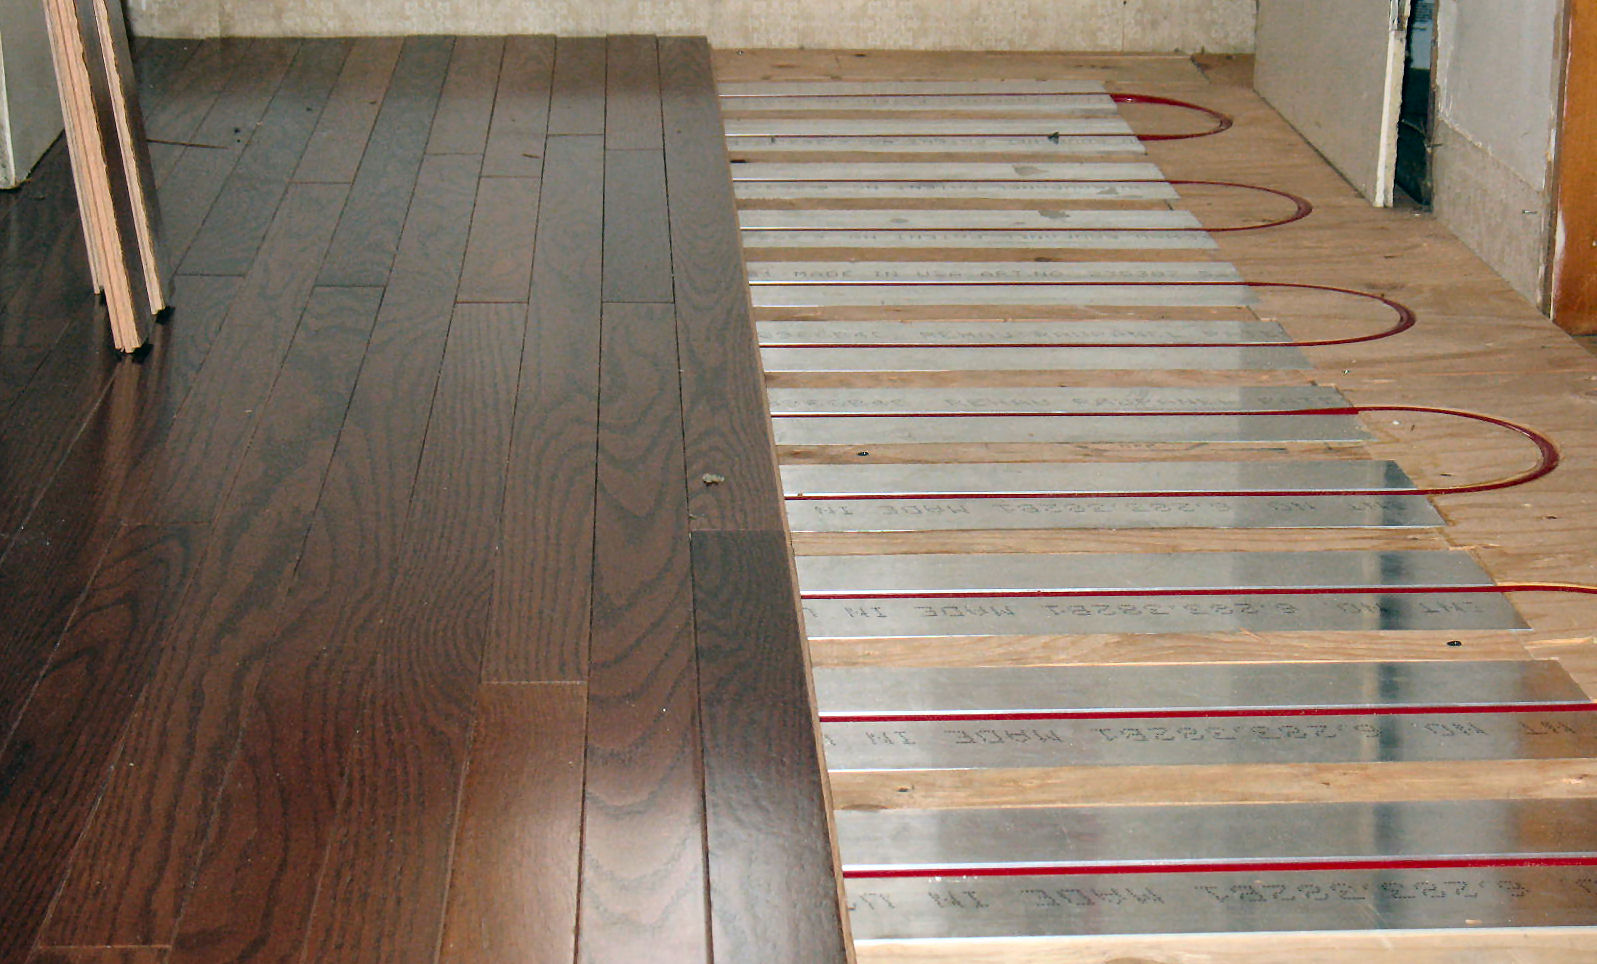 click insulationmethods for insulate flooring instructions floor with heat prodex under installation wood to insulation a installed how heating radiant